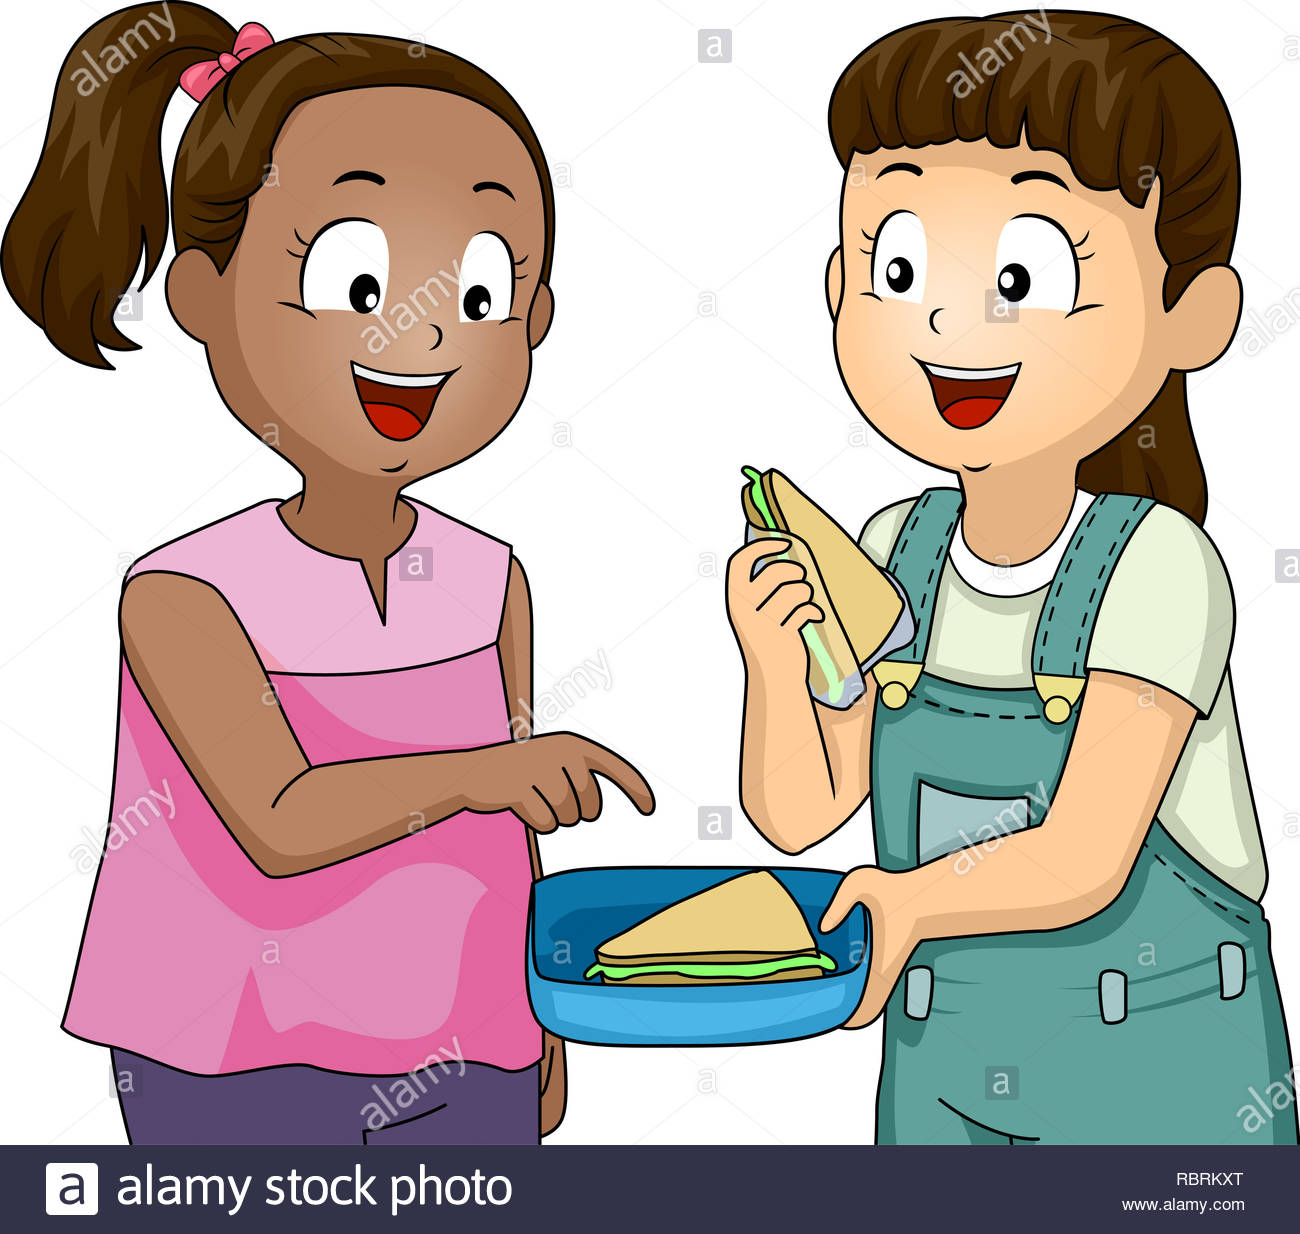 Illustration of a Kid Girl Sharing Sandwich with a Friend. Positive.